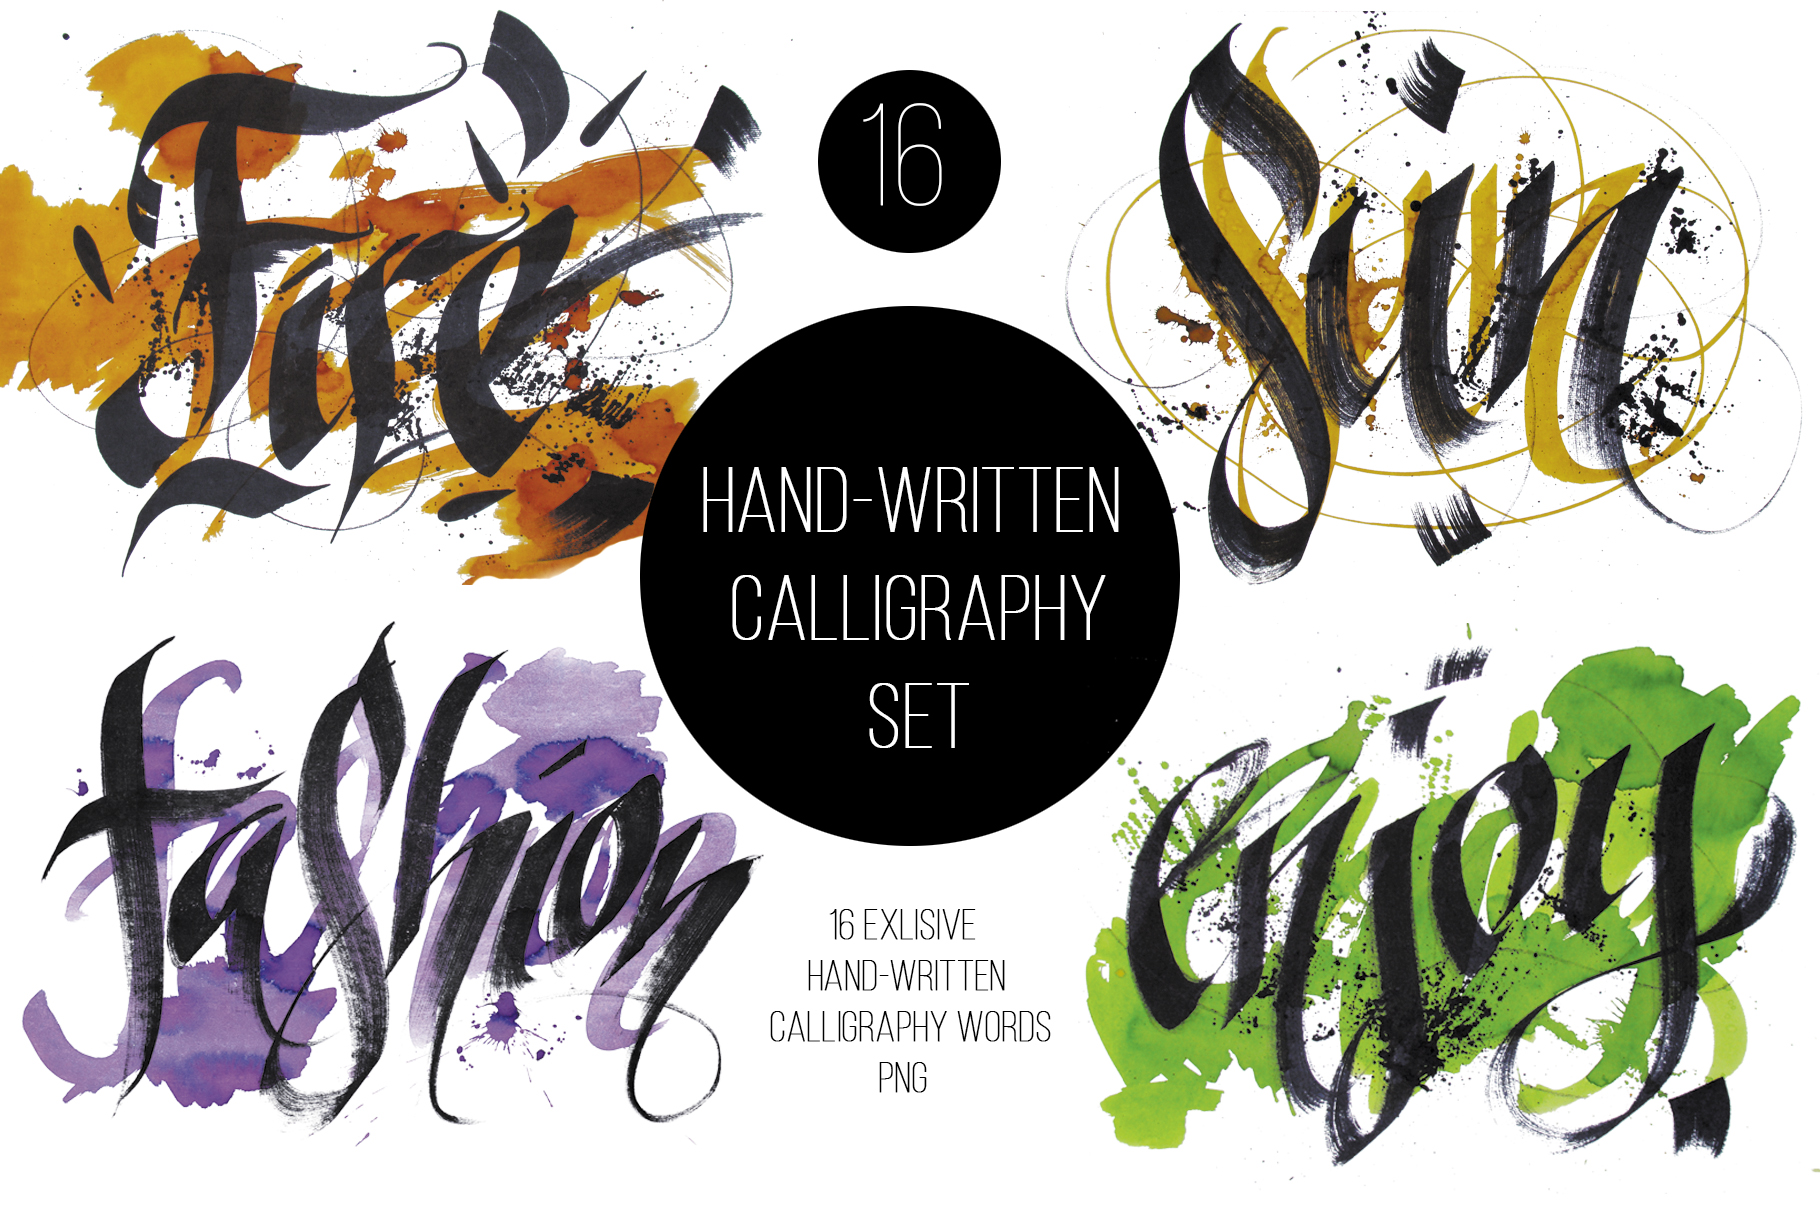 Hand-written Calligraphy Set example image 1